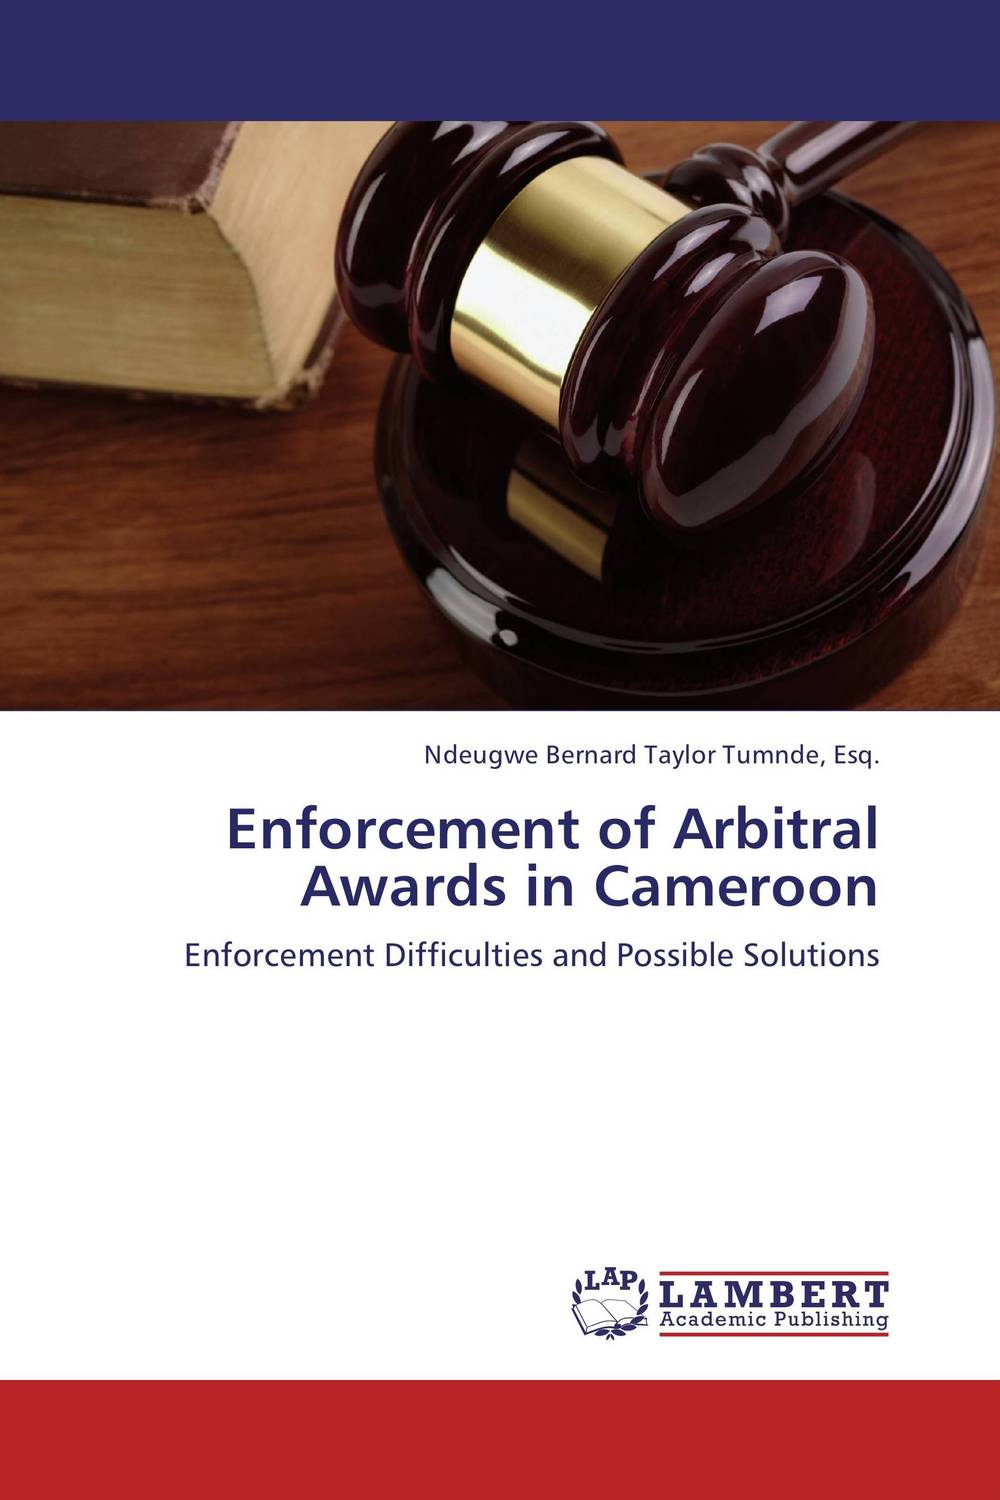 Enforcement of Arbitral Awards in Cameroon